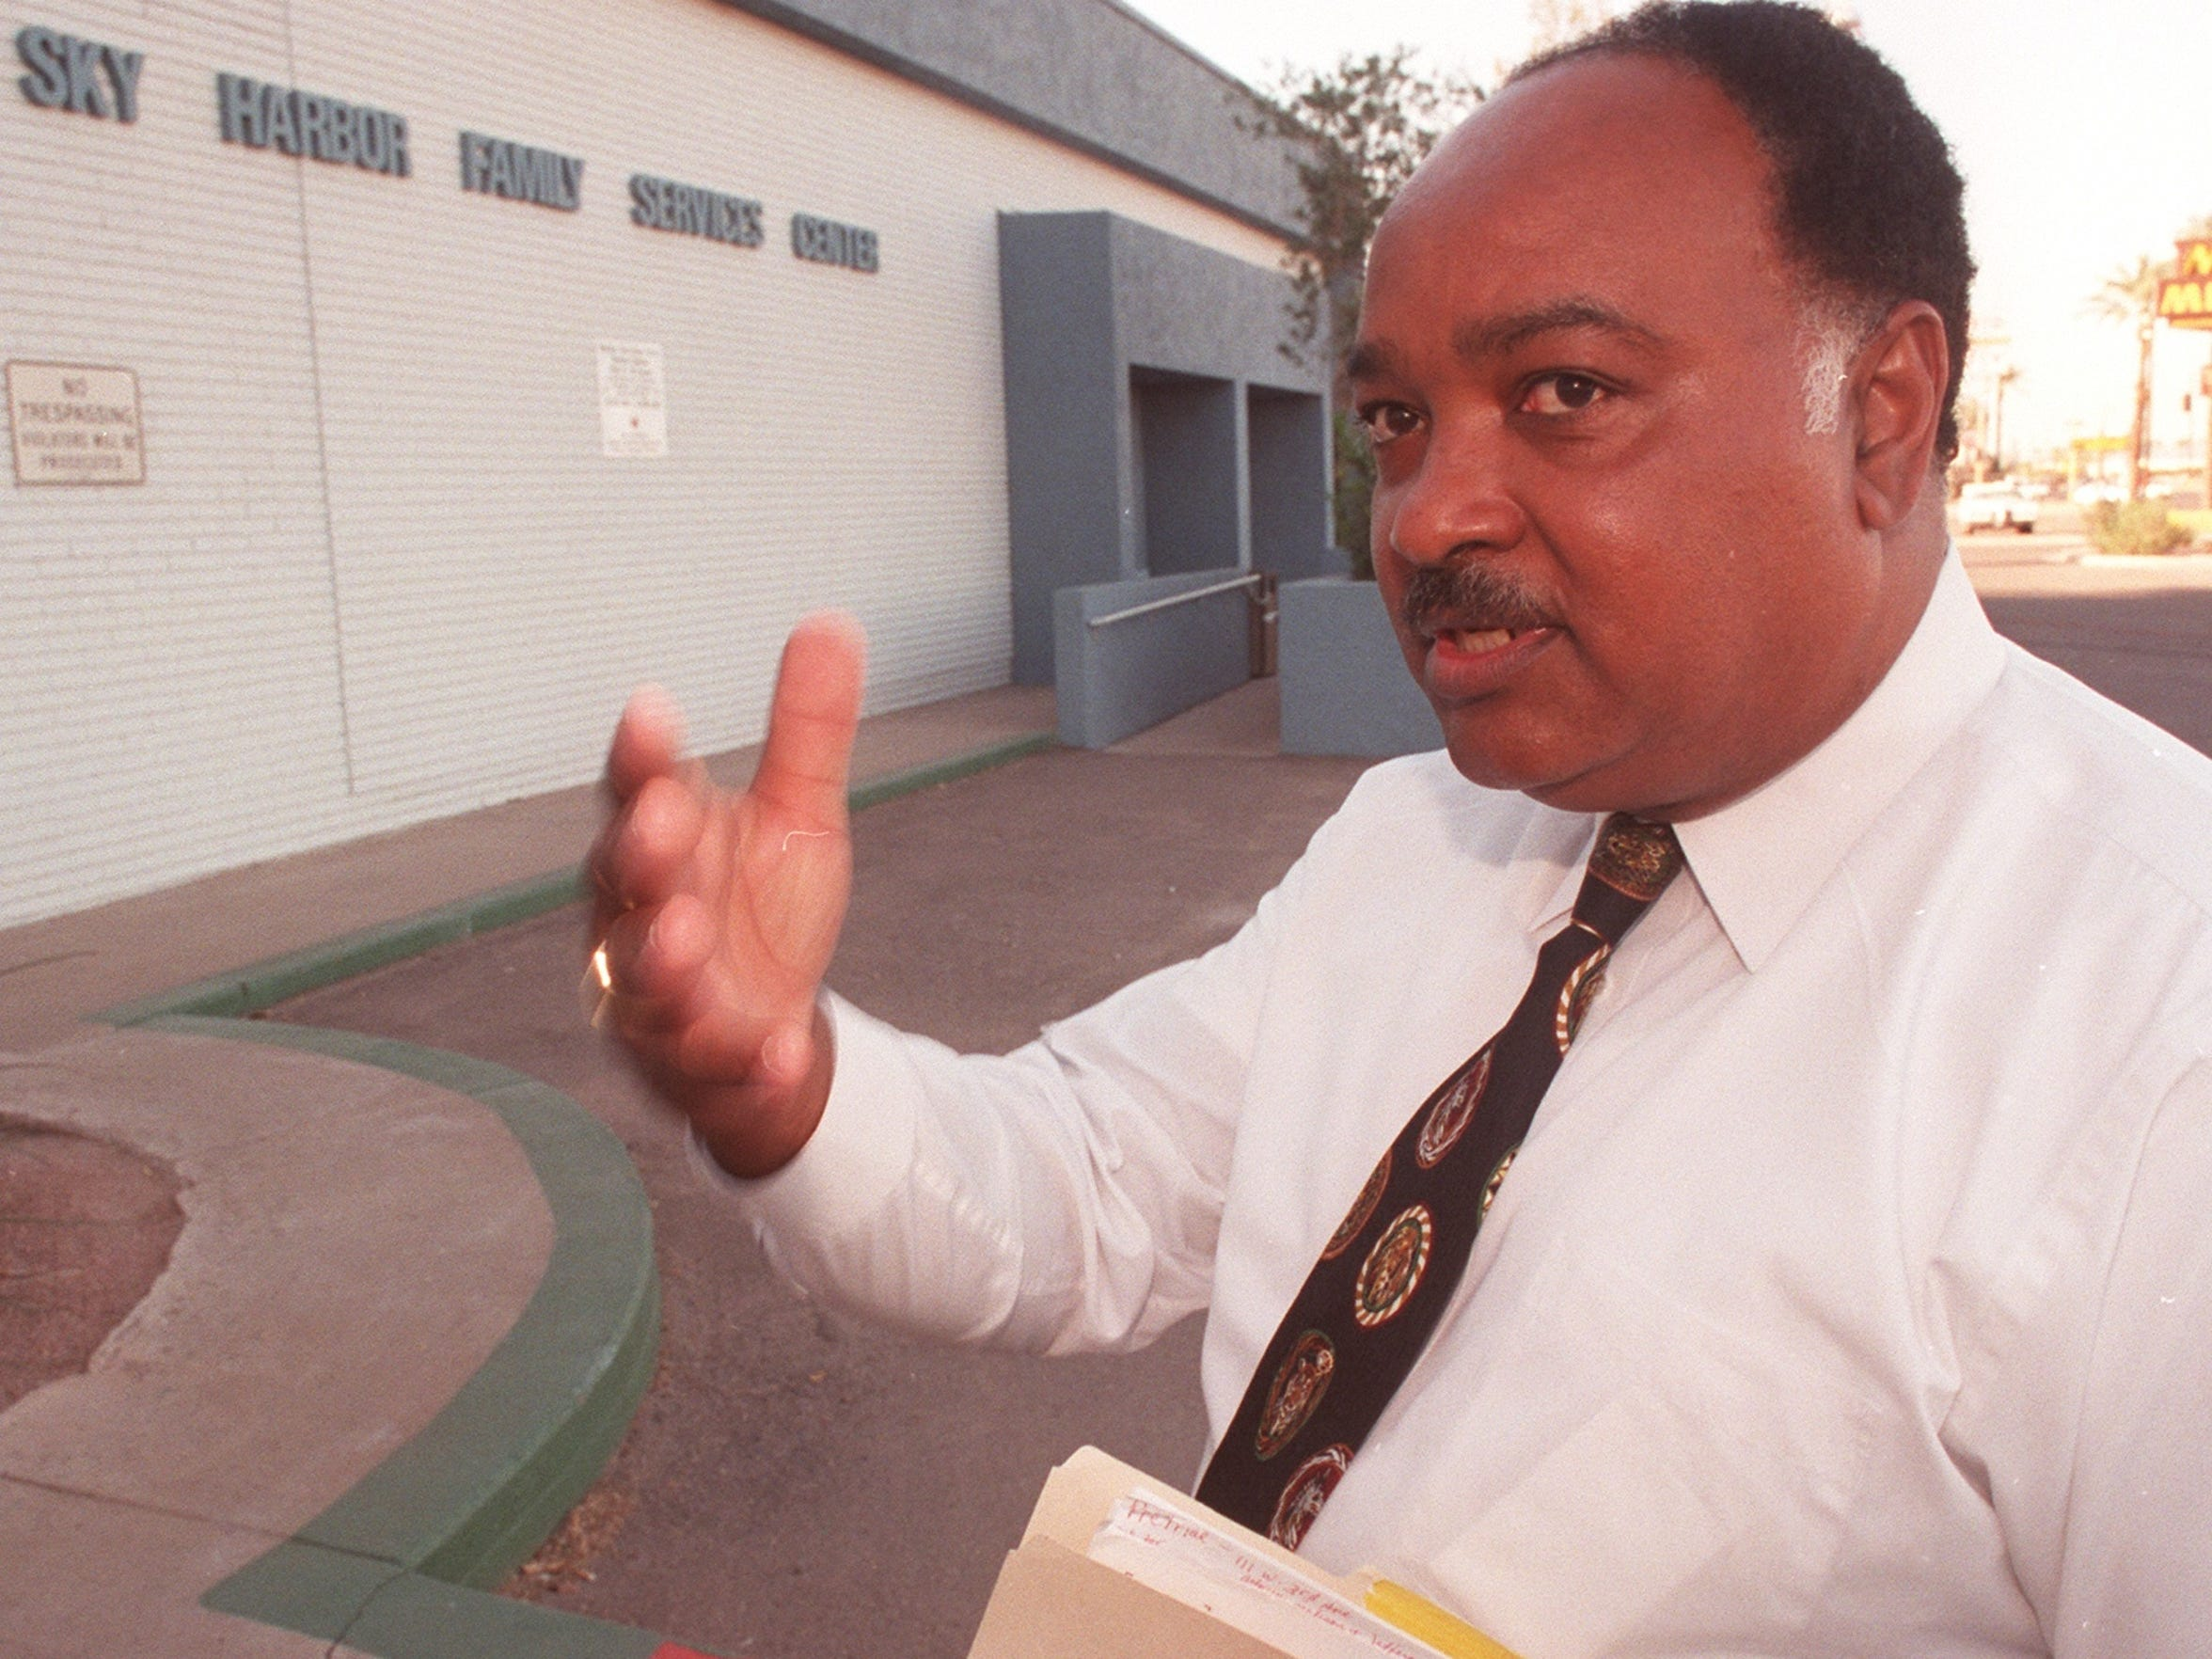 Rev. Oscar Tillman in 1999, discussing a case in which